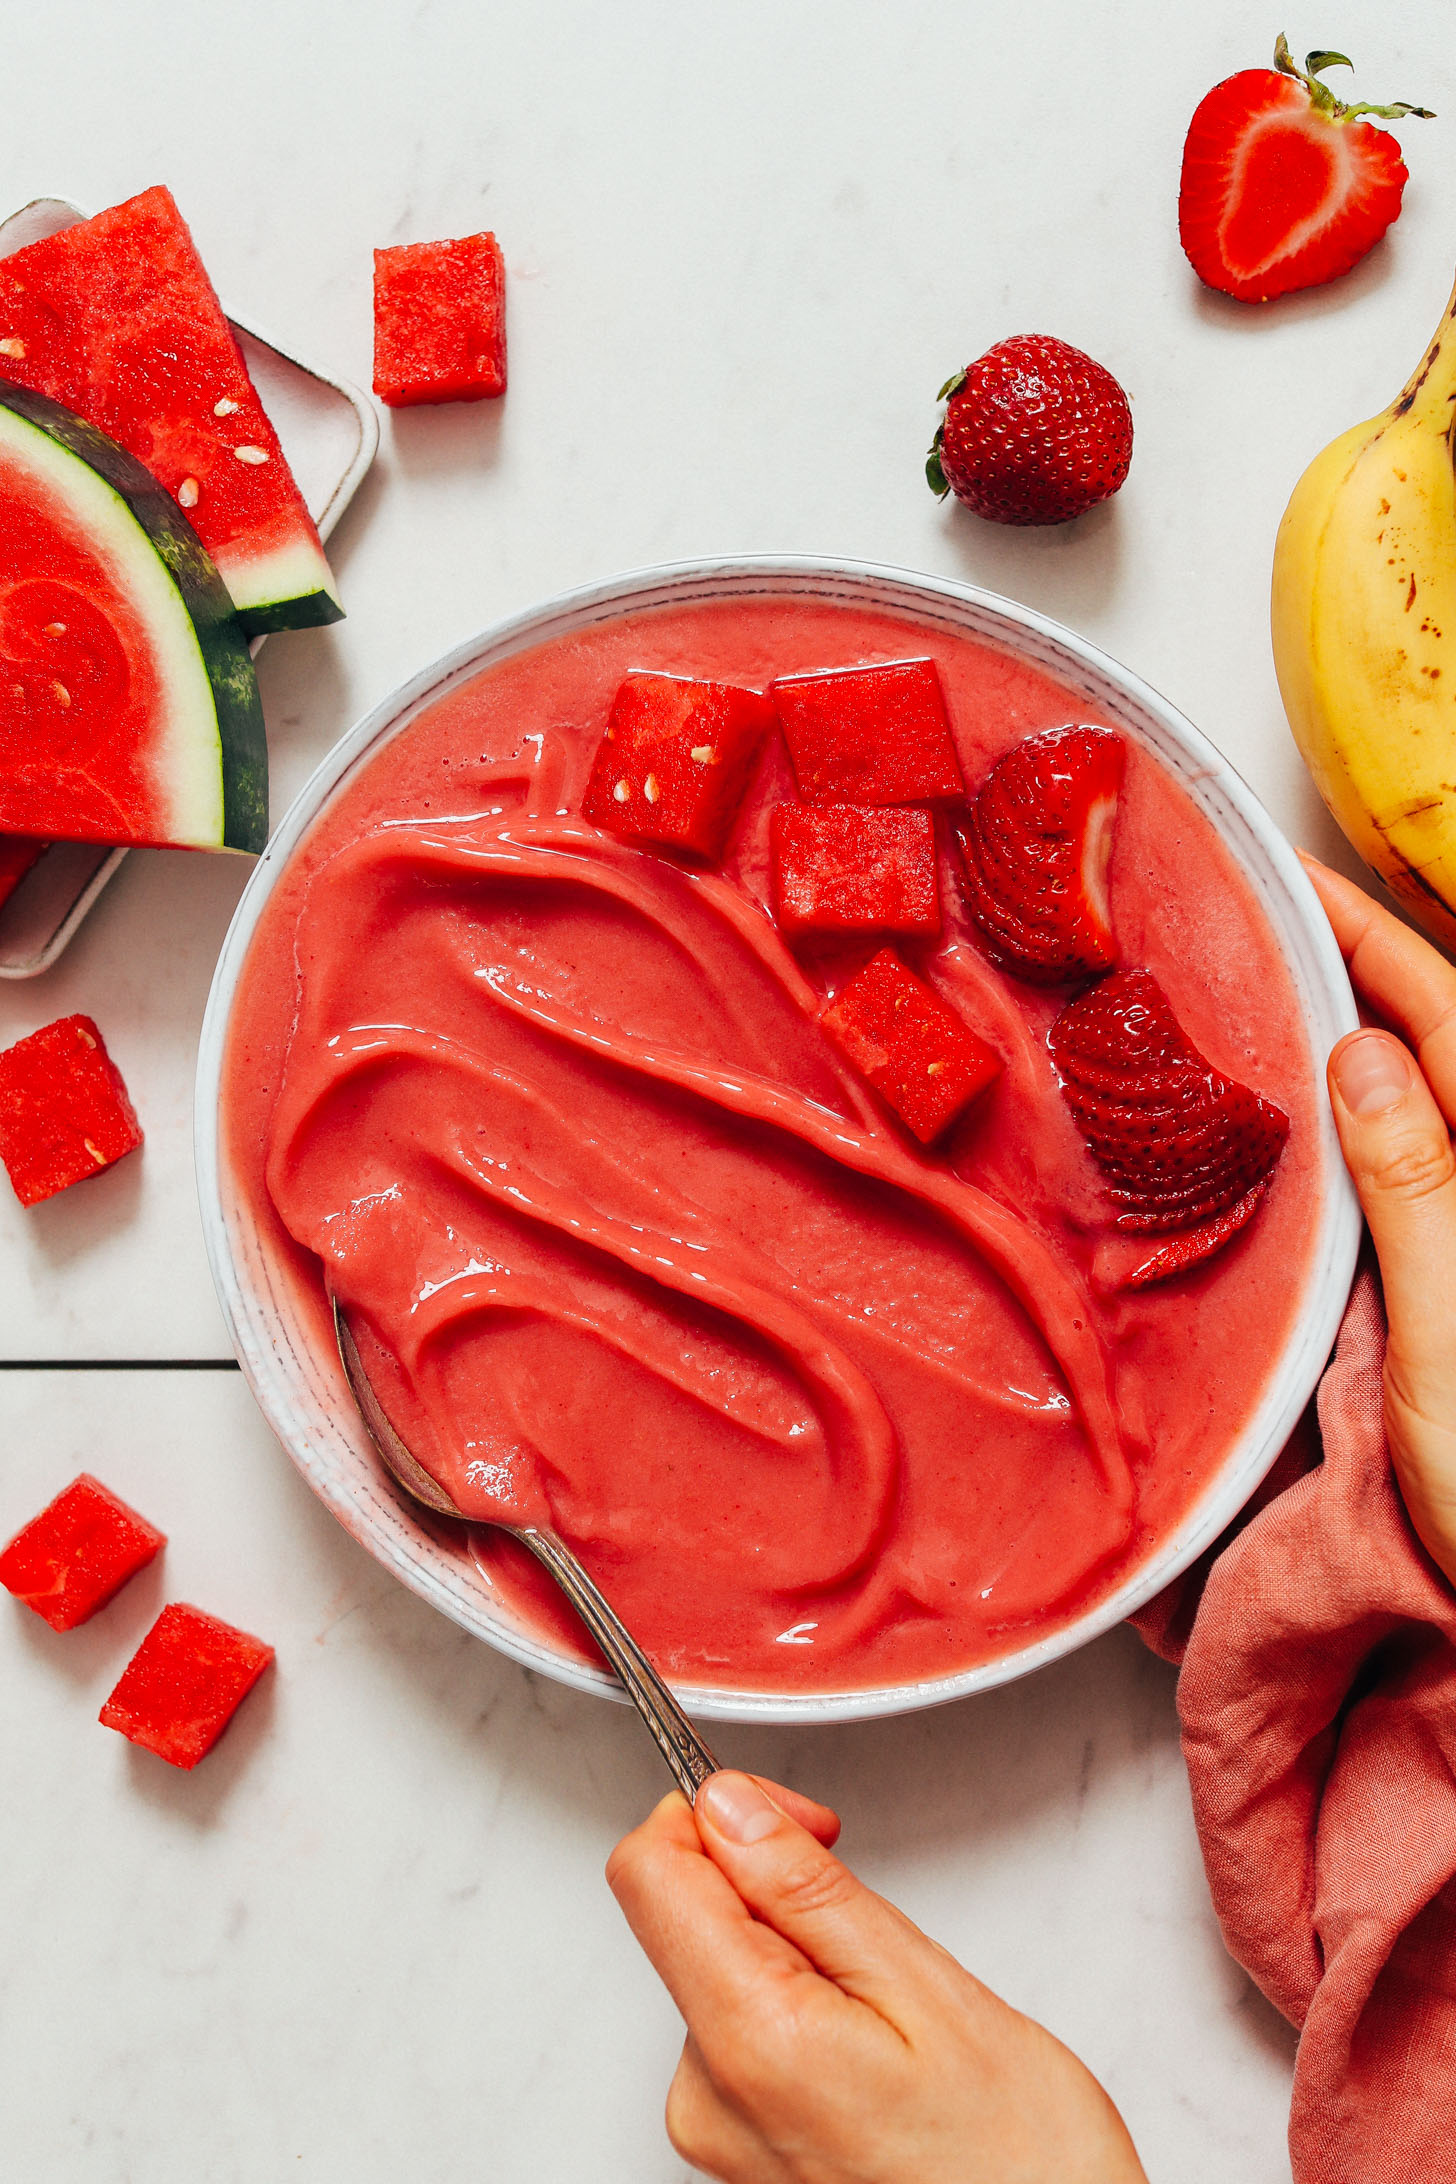 Spoon in a bowl of Watermelon Sorbet topped with fresh strawberries and watermelon chunks